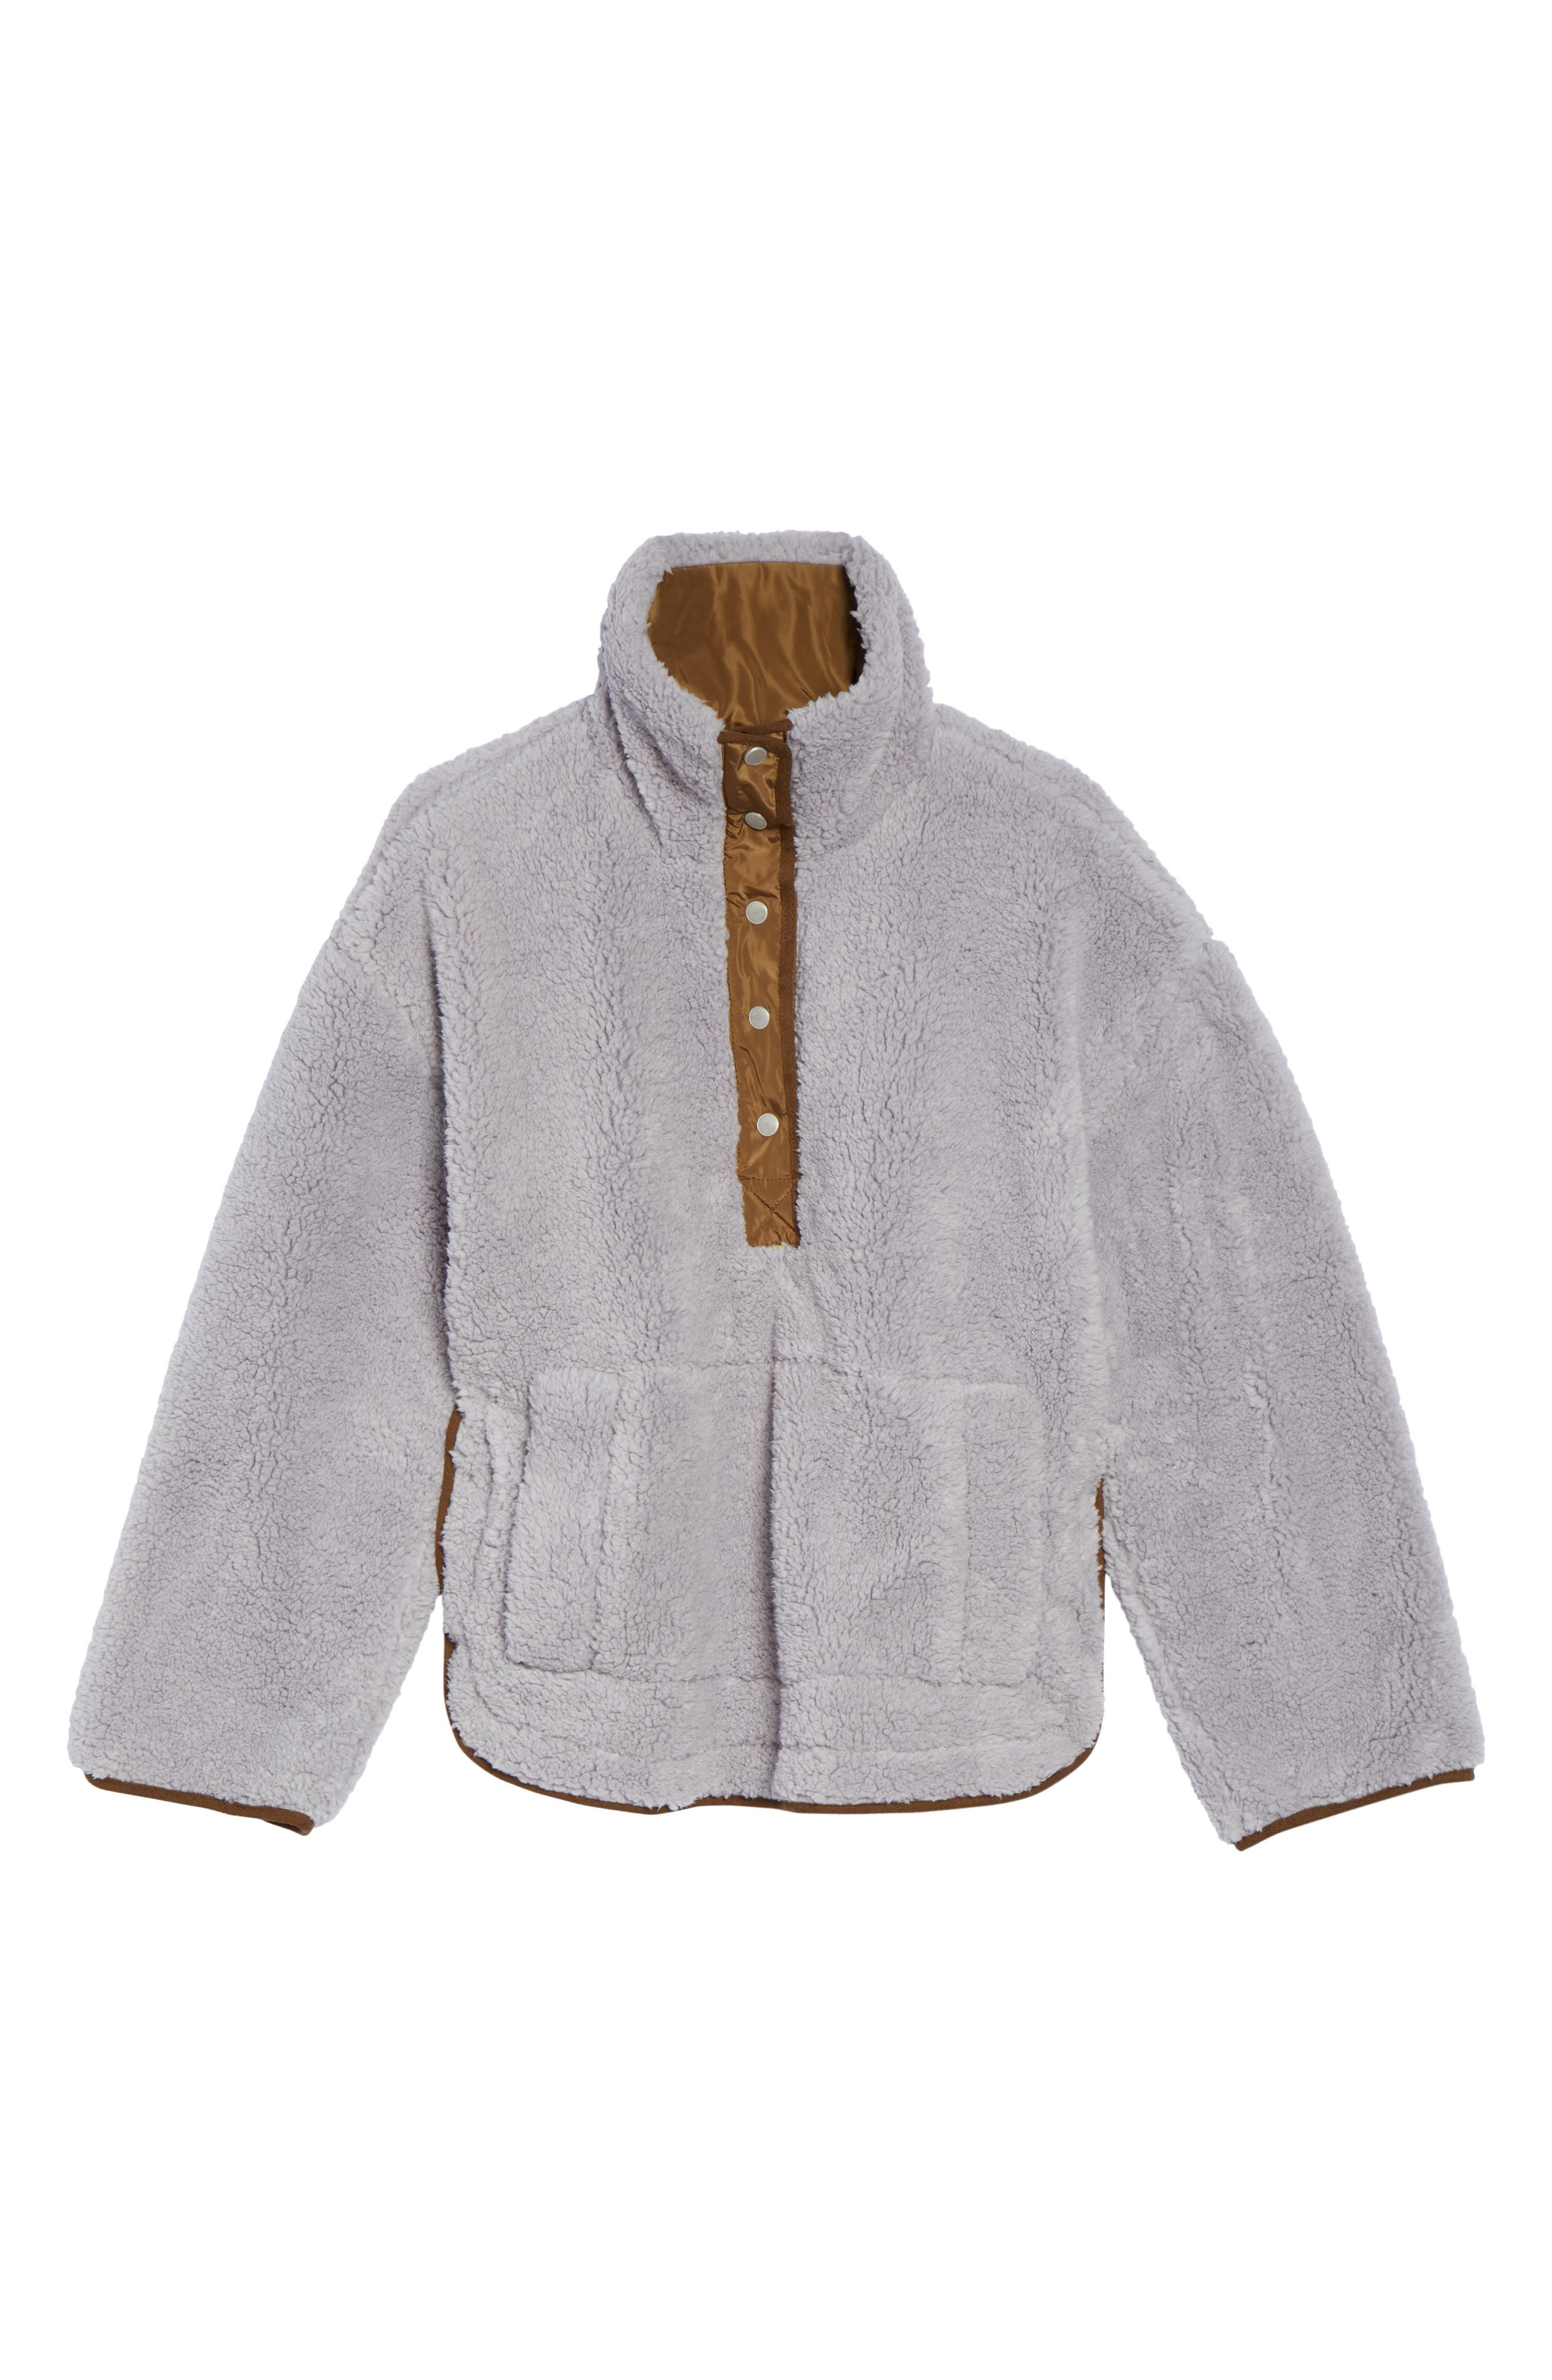 Free People Oh So Cozy Fleece Pullover,                             Alternate thumbnail 12, color,